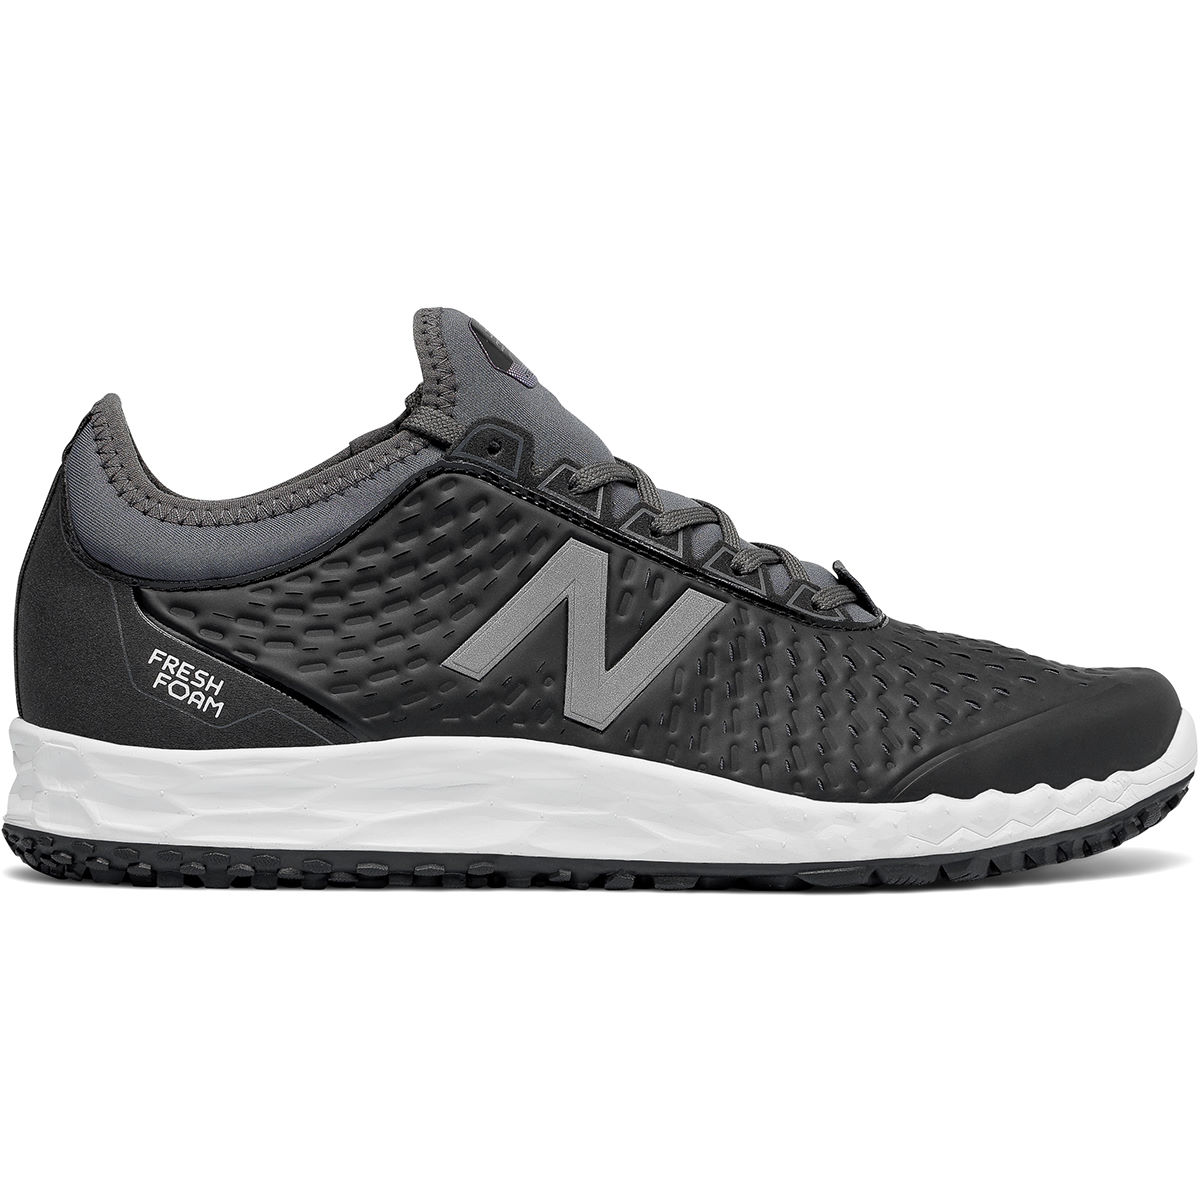 New Balance Vado v1 Shoes - Zapatillas de entrenamiento